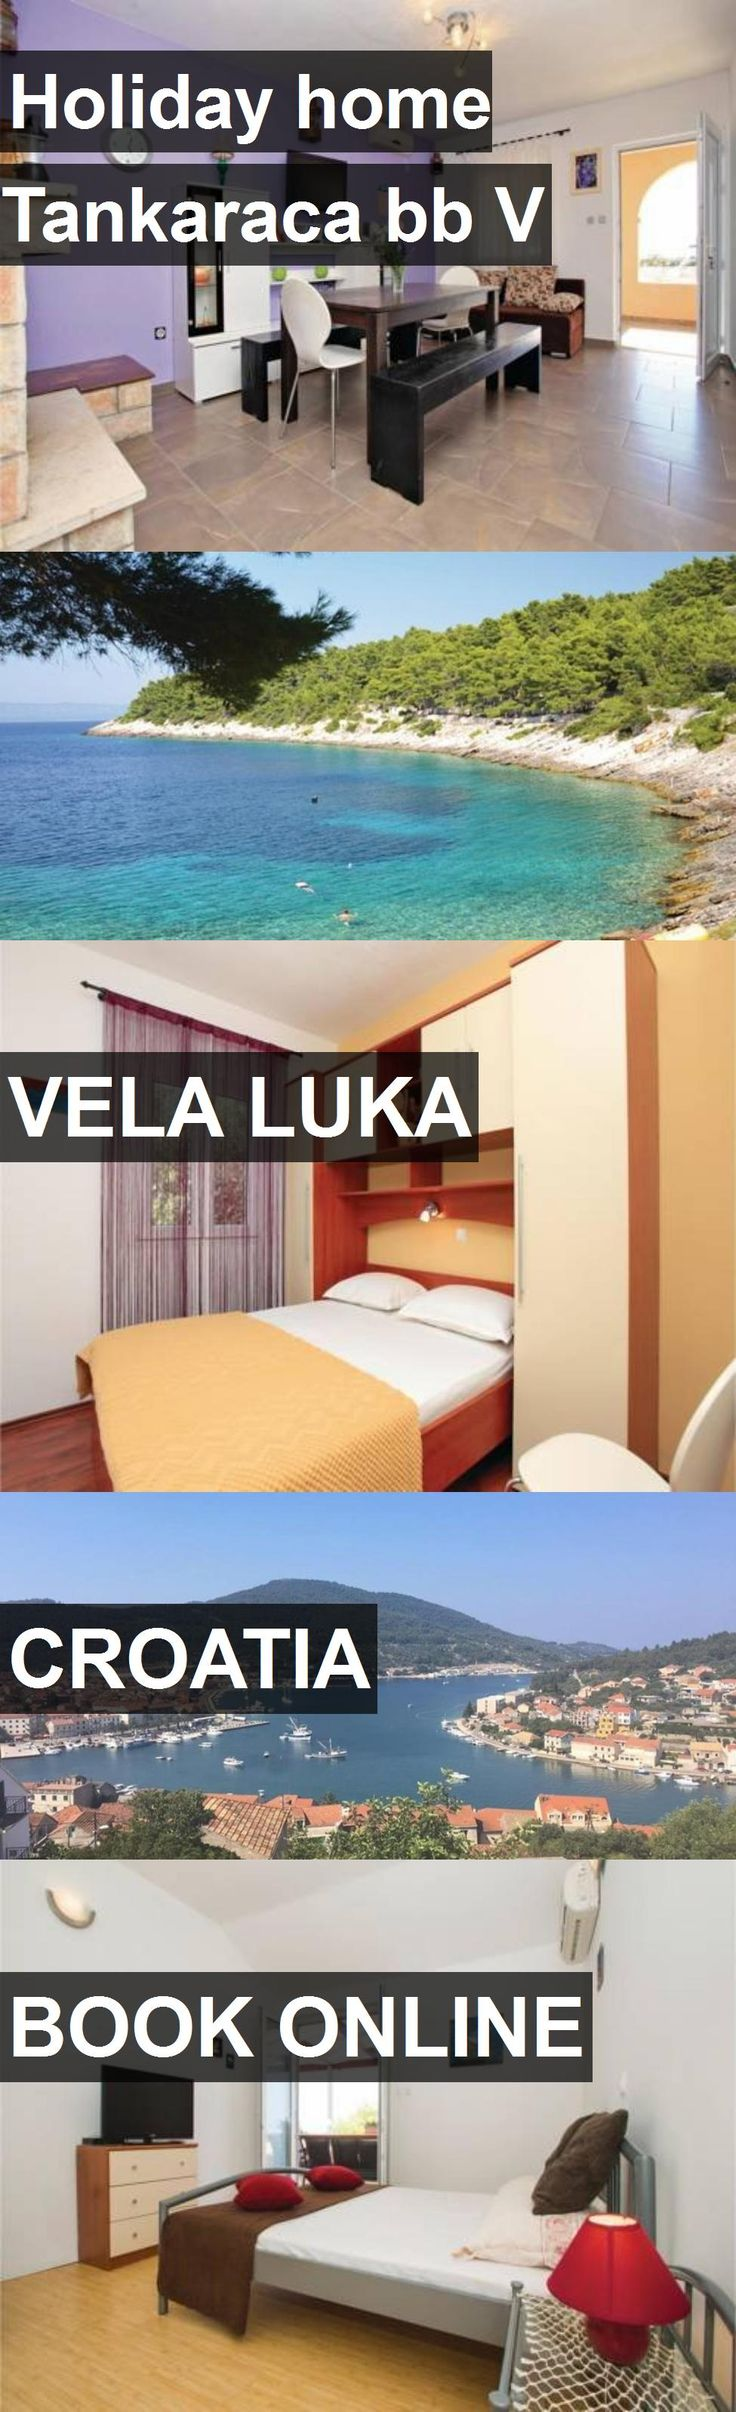 Hotel Holiday home Tankaraca bb V in Vela Luka, Croatia. For more information, photos, reviews and best prices please follow the link. #Croatia #VelaLuka #travel #vacation #hotel